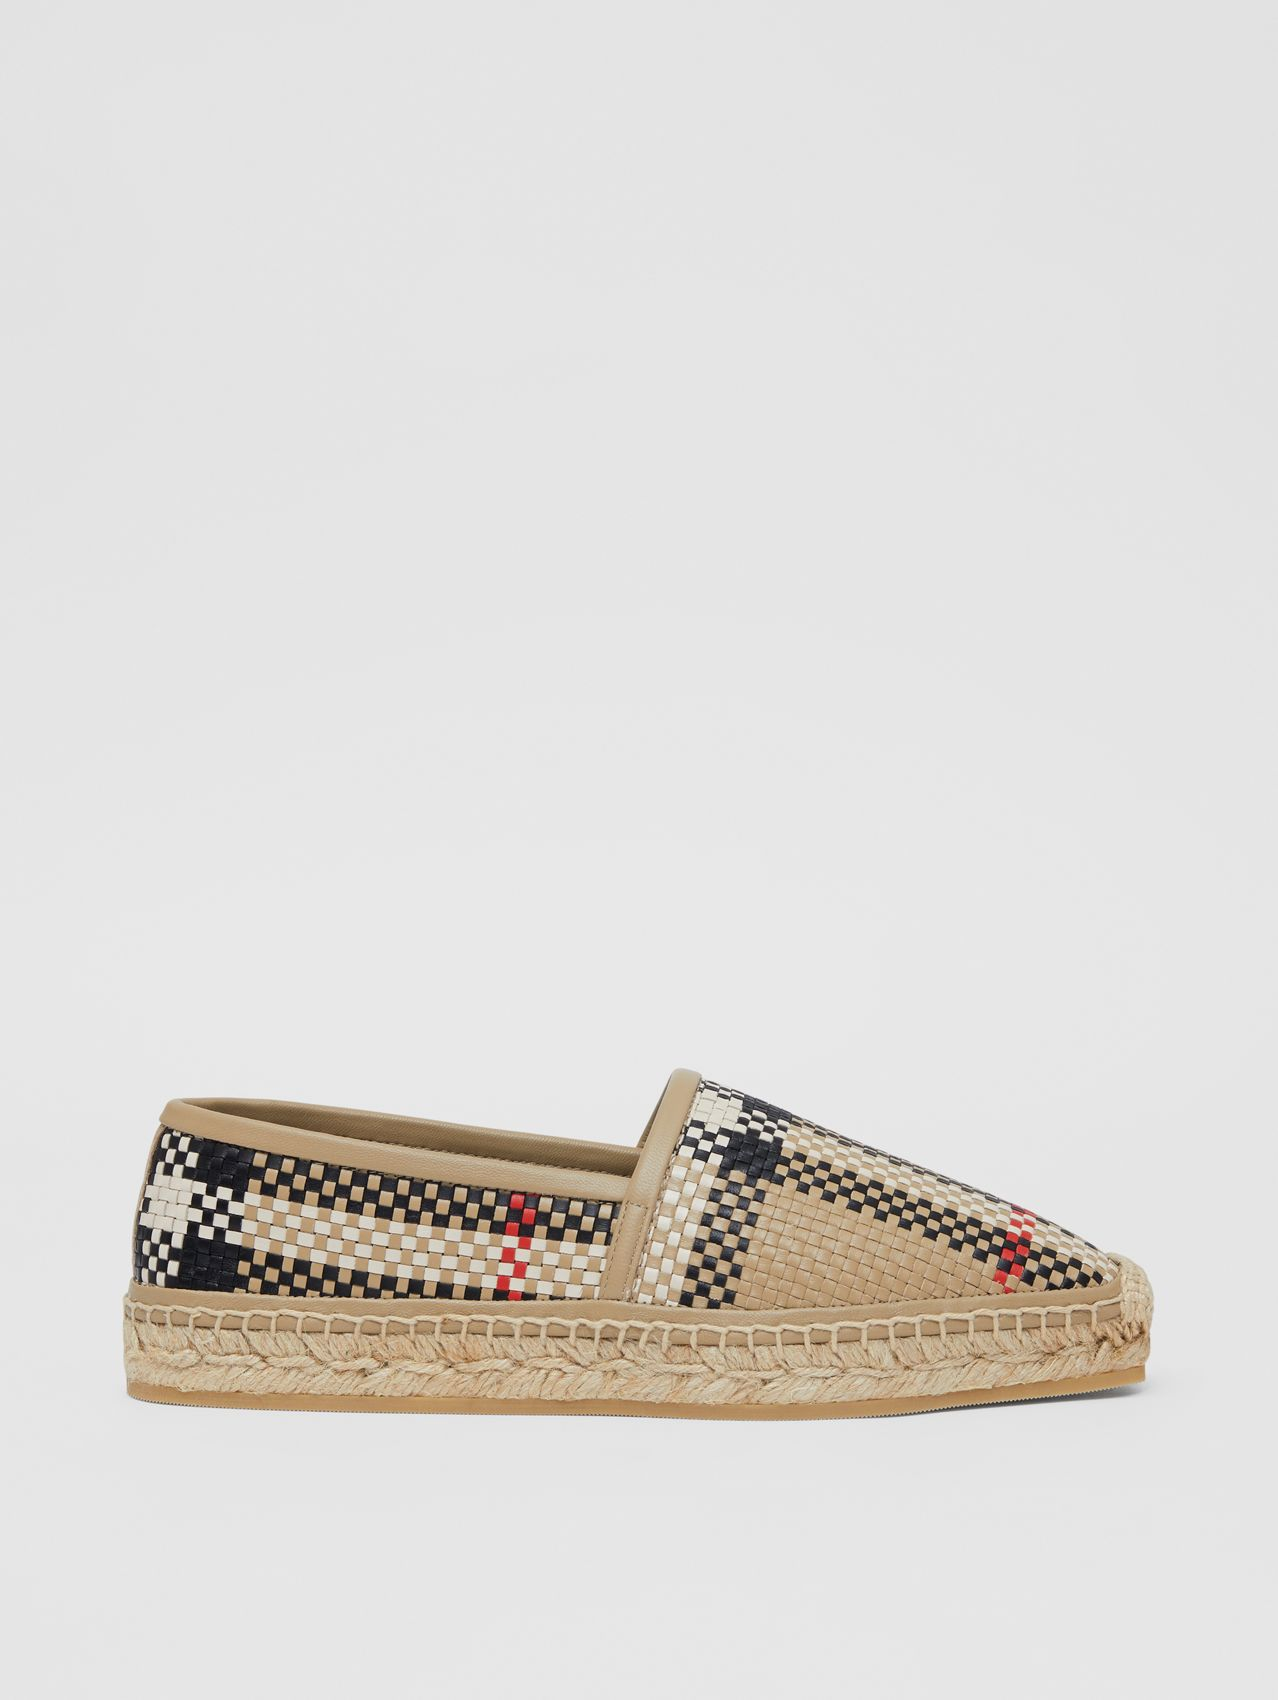 Latticed Leather Espadrilles (Archive Beige)